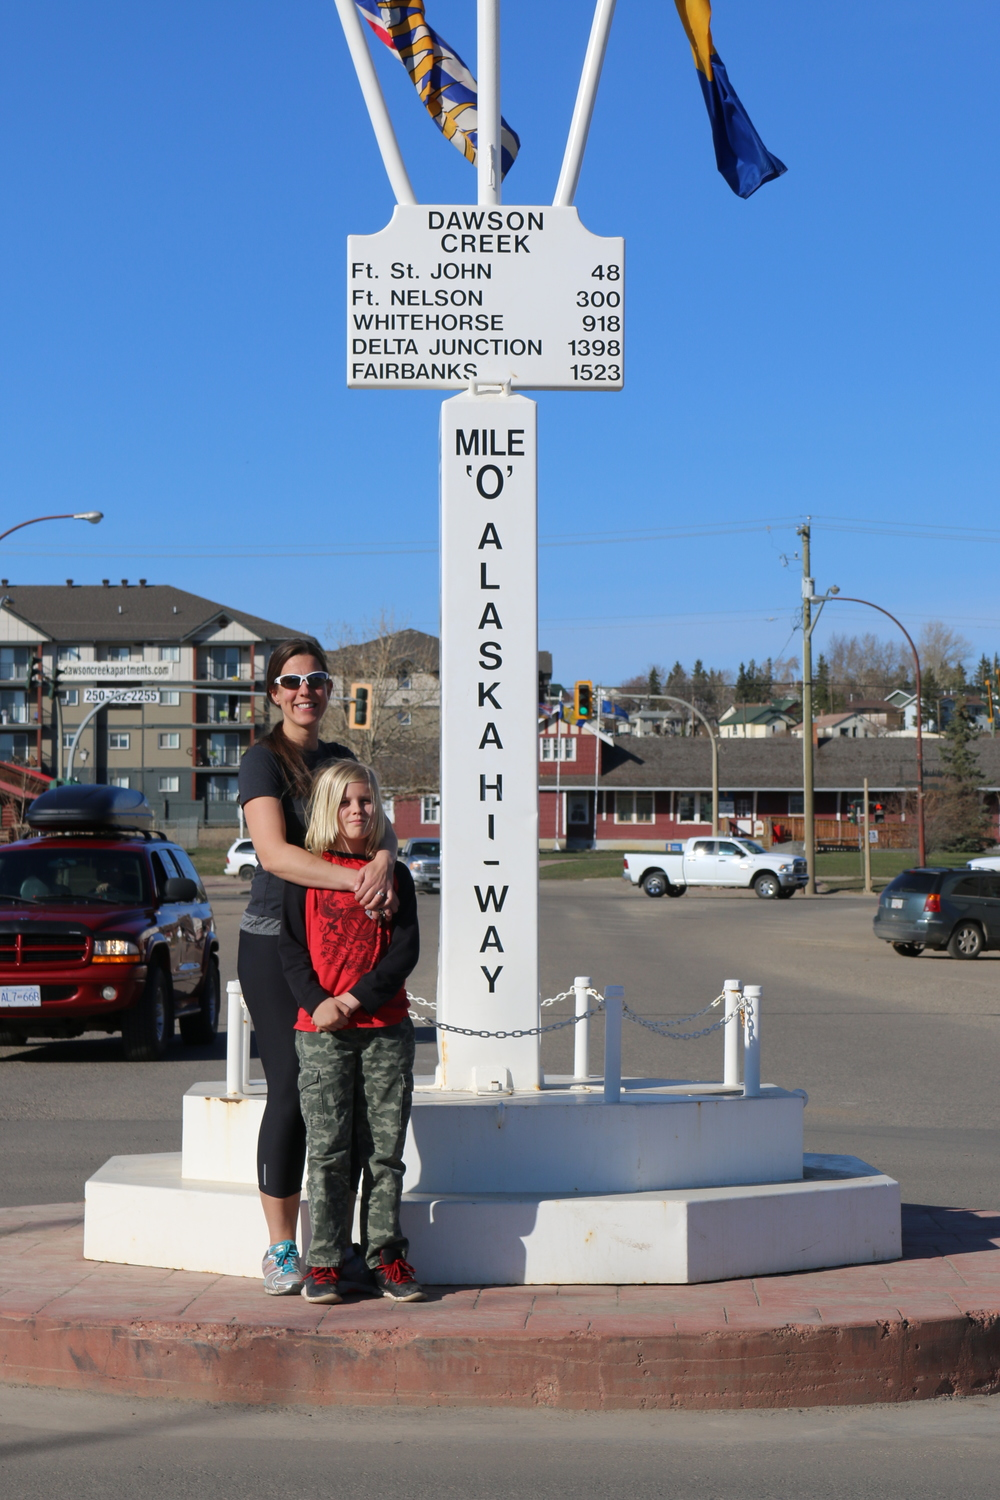 Dawson creek, BC: Mile 0 of the Alaska hwy